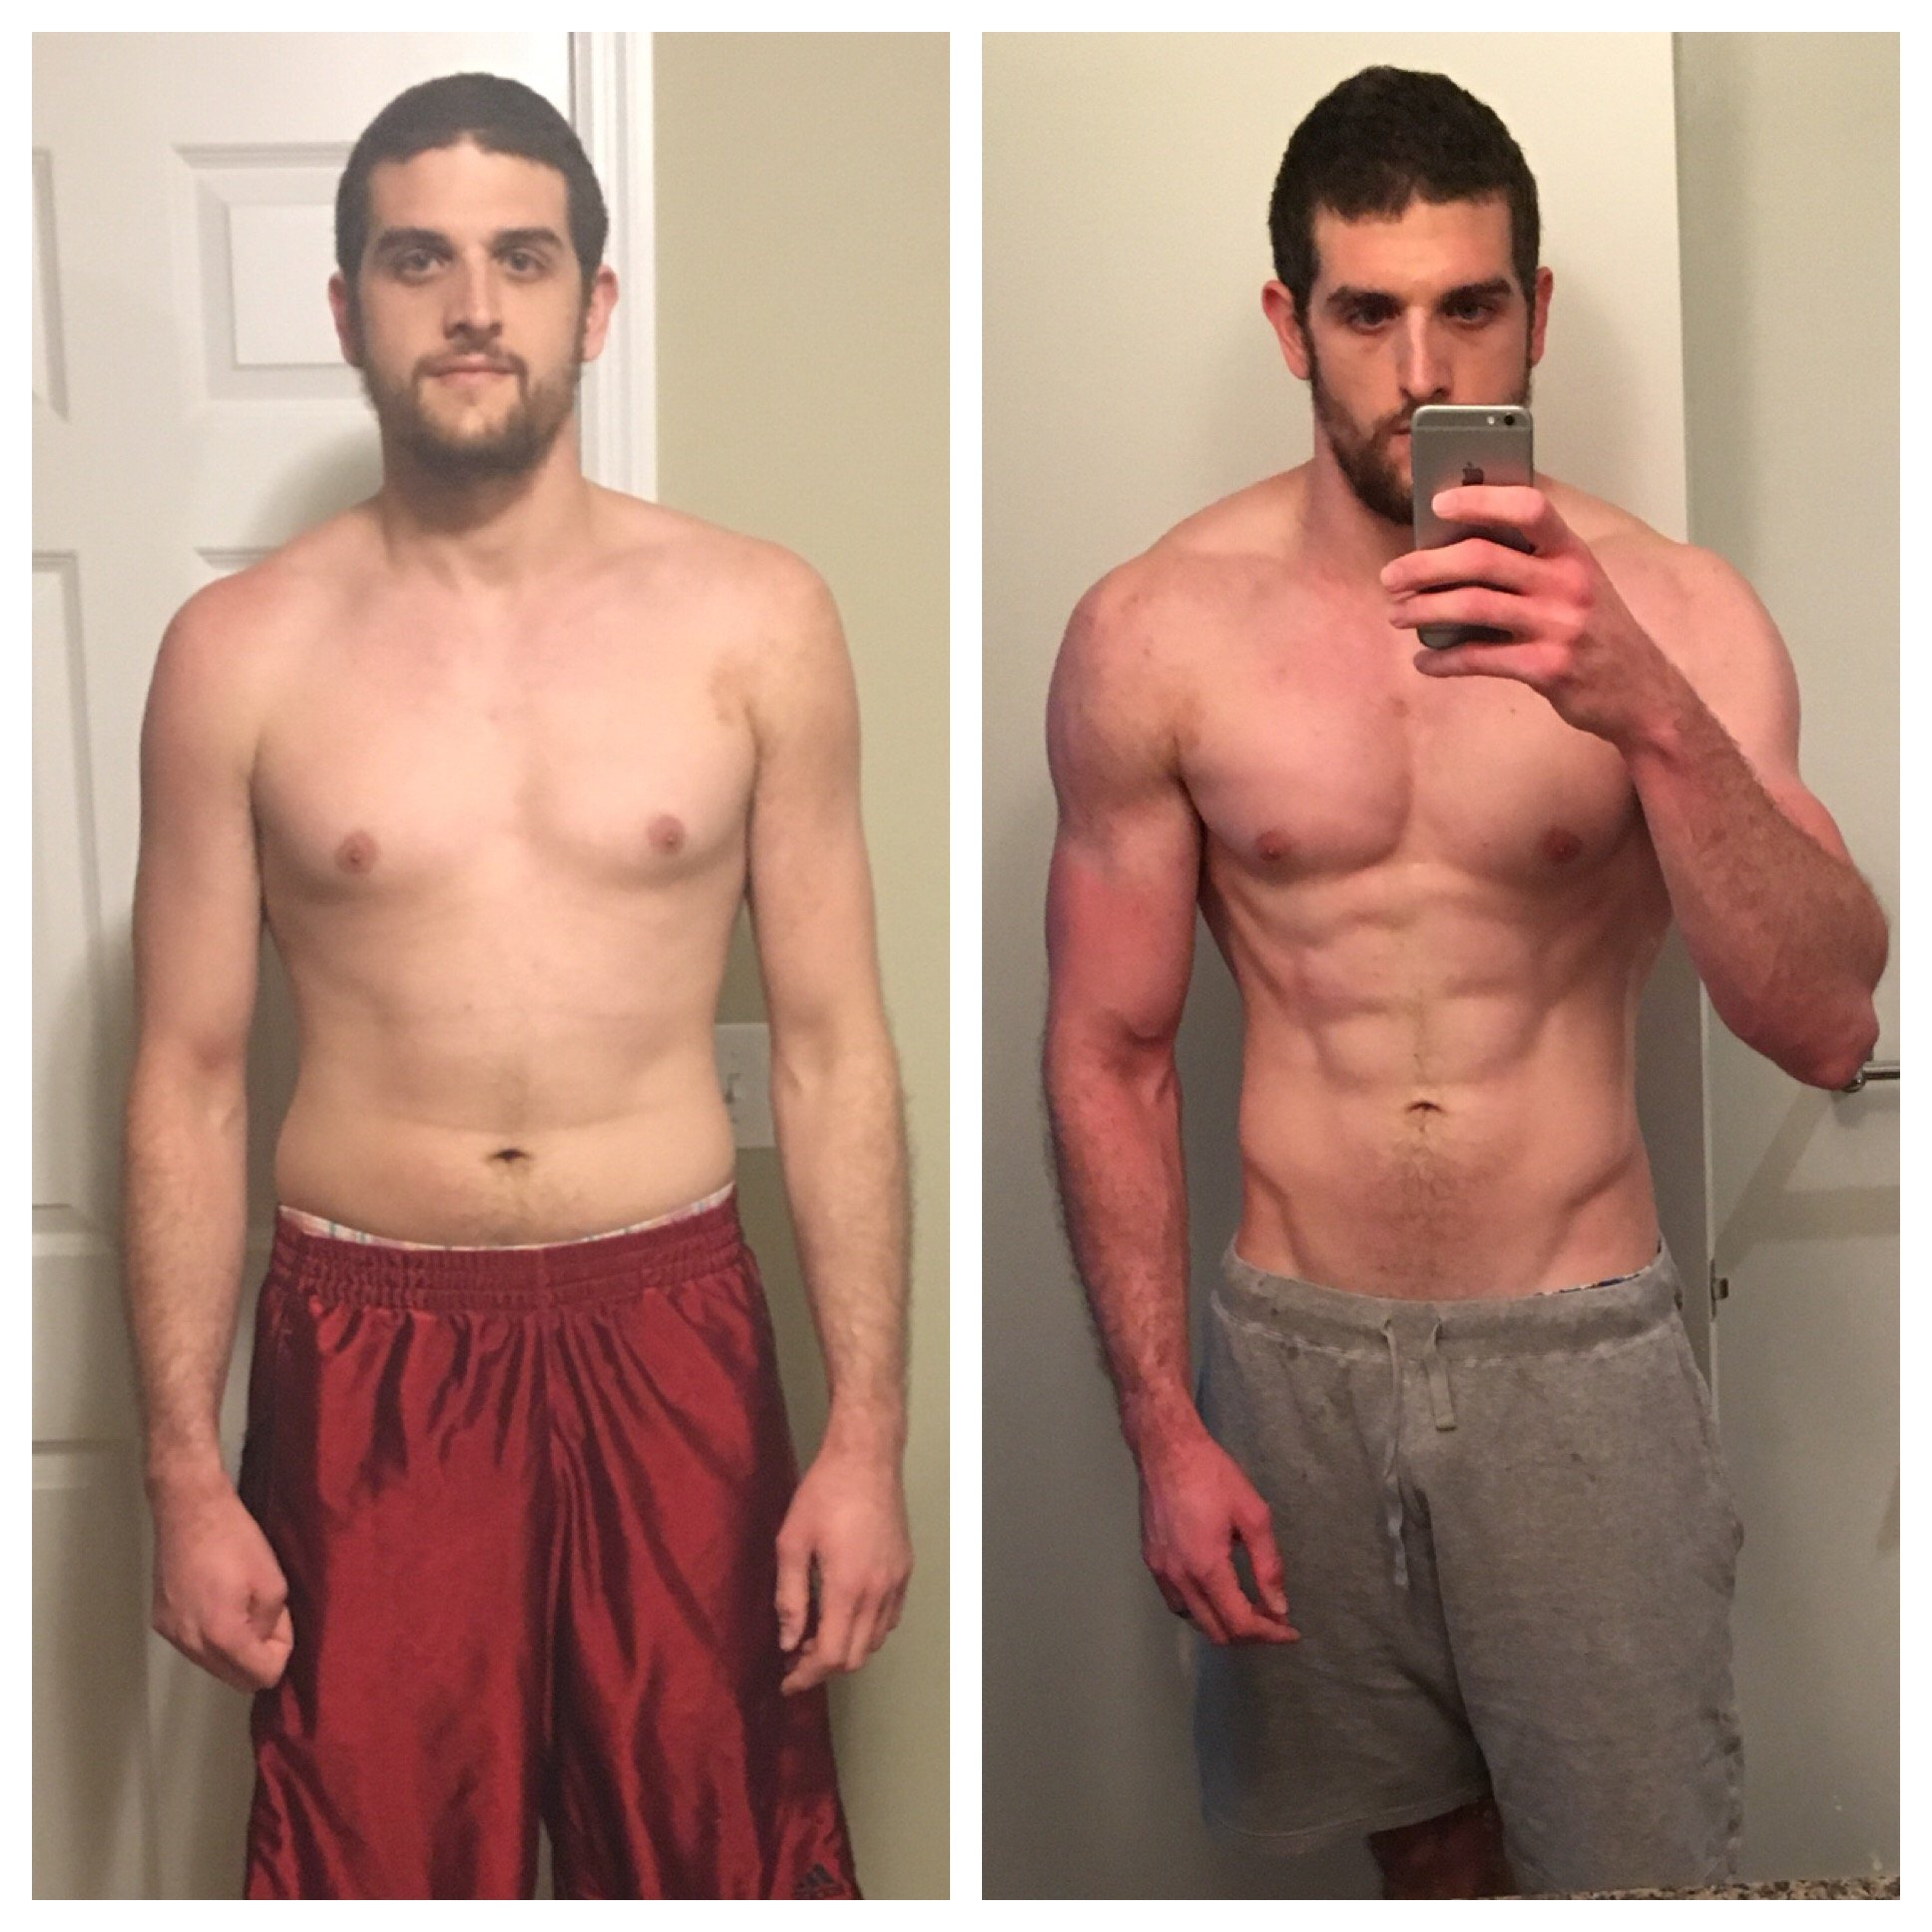 How I Got This Body: Lifting Weights and Using Excel Spreadsheets to